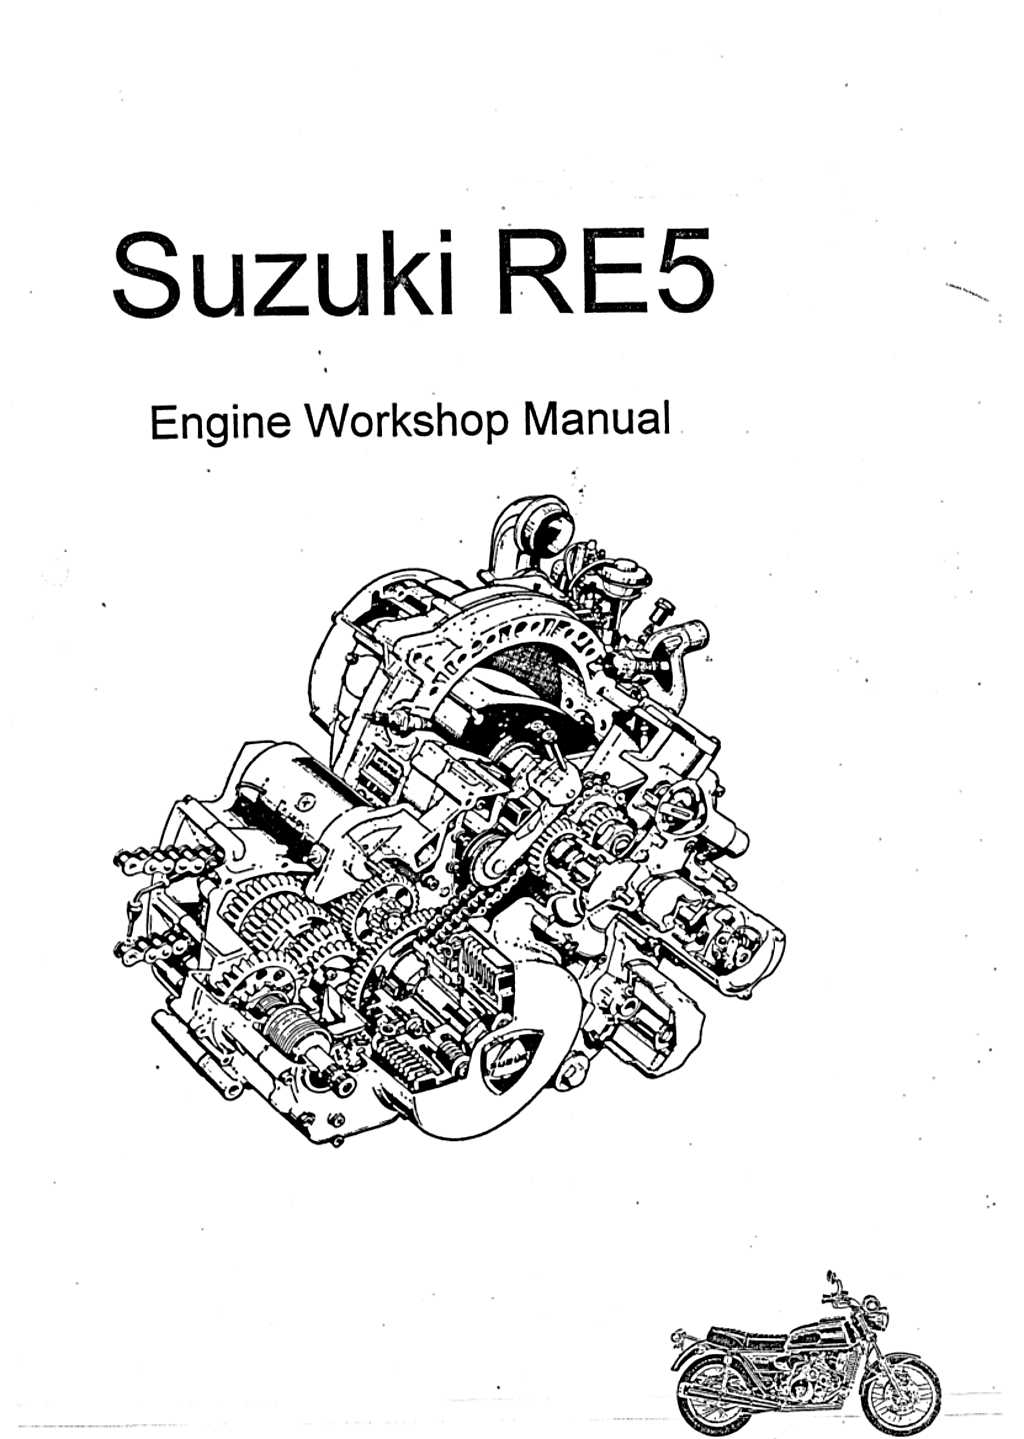 RE5 Engine Service Manual